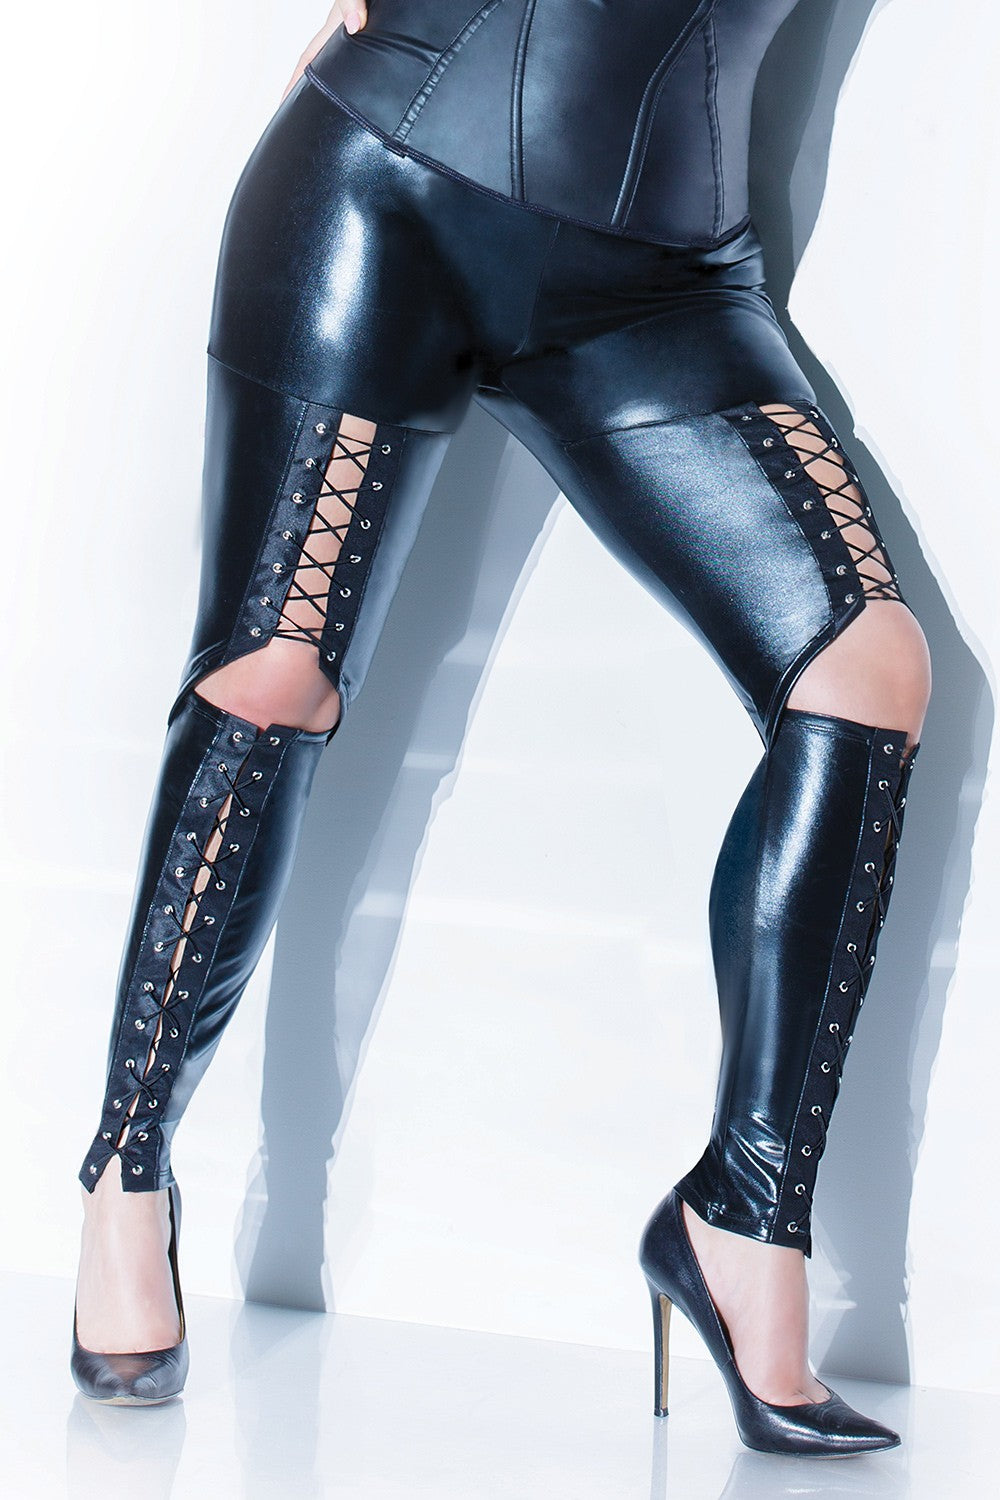 Black Wet Look Elastic Pants from Coquette : Plus Size Lace Up Pants